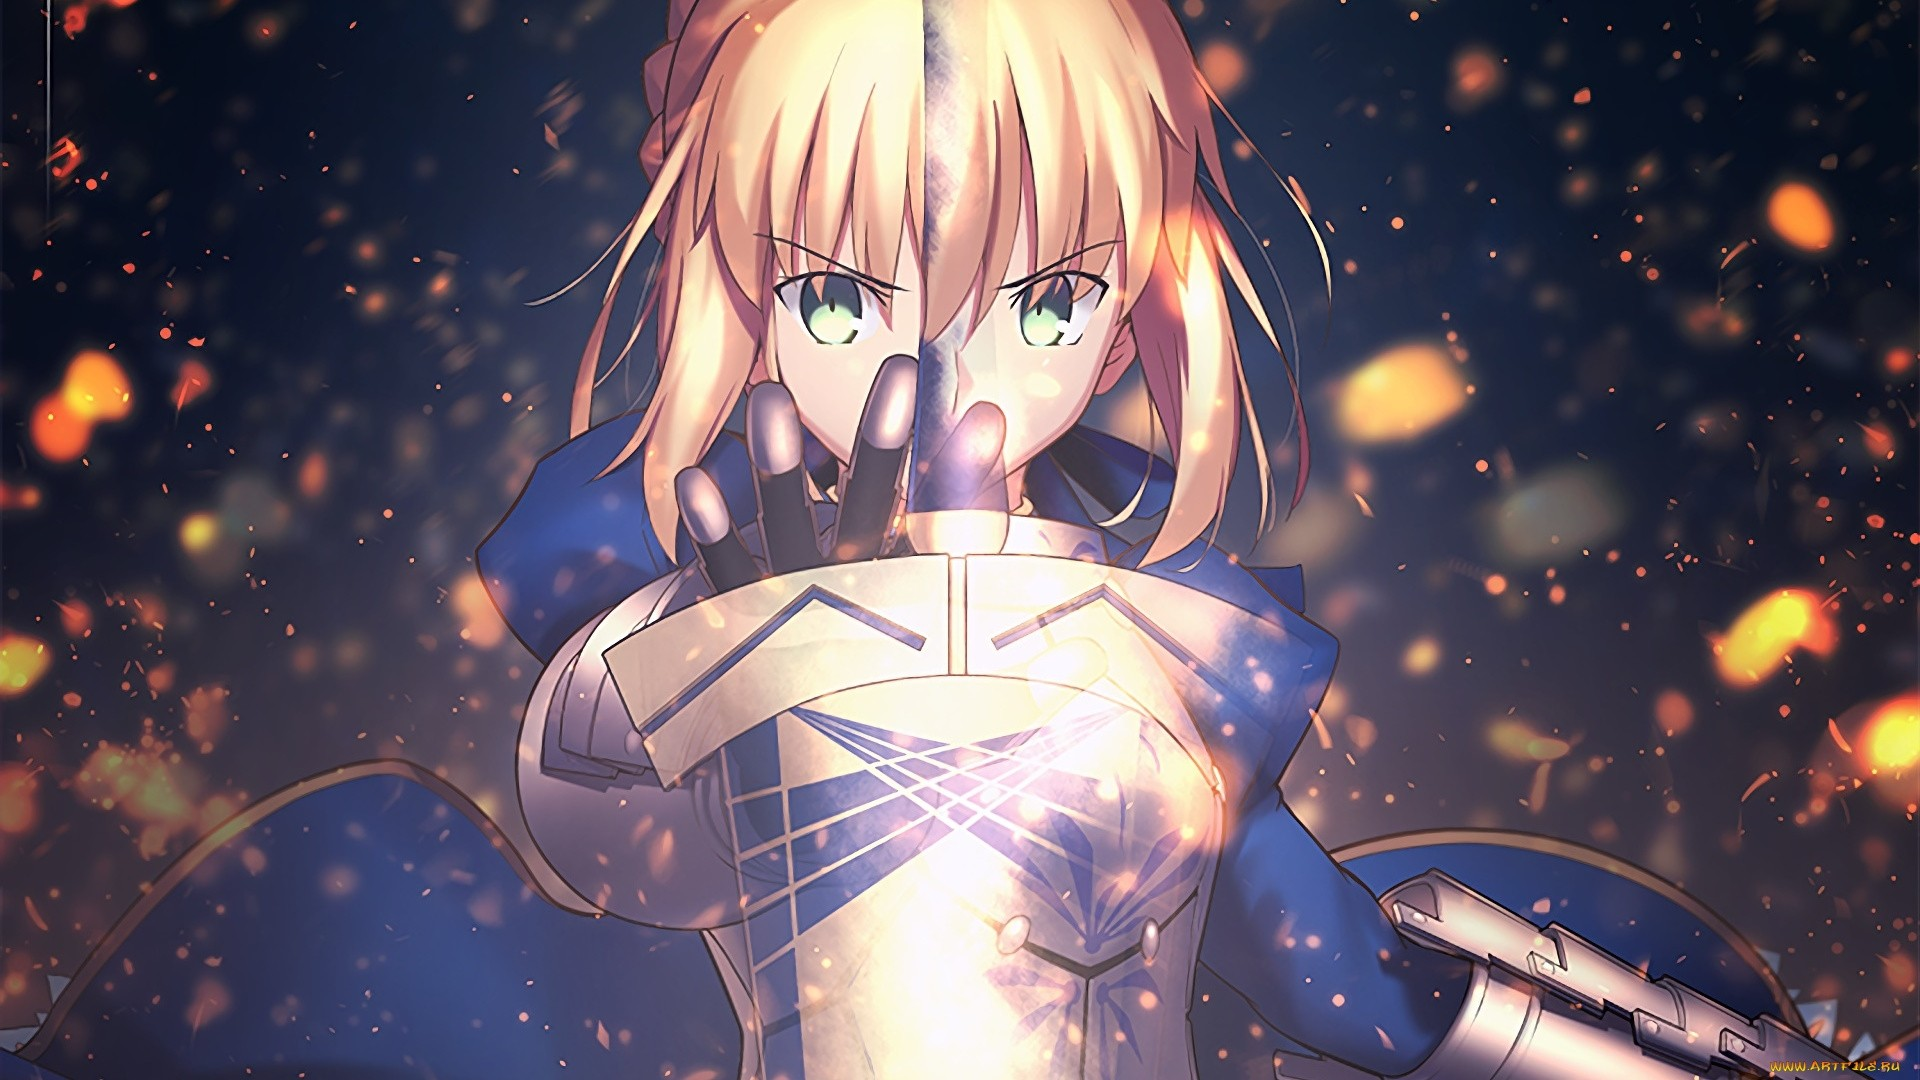 Fate Stay Night Saber Wallpaper Free Download